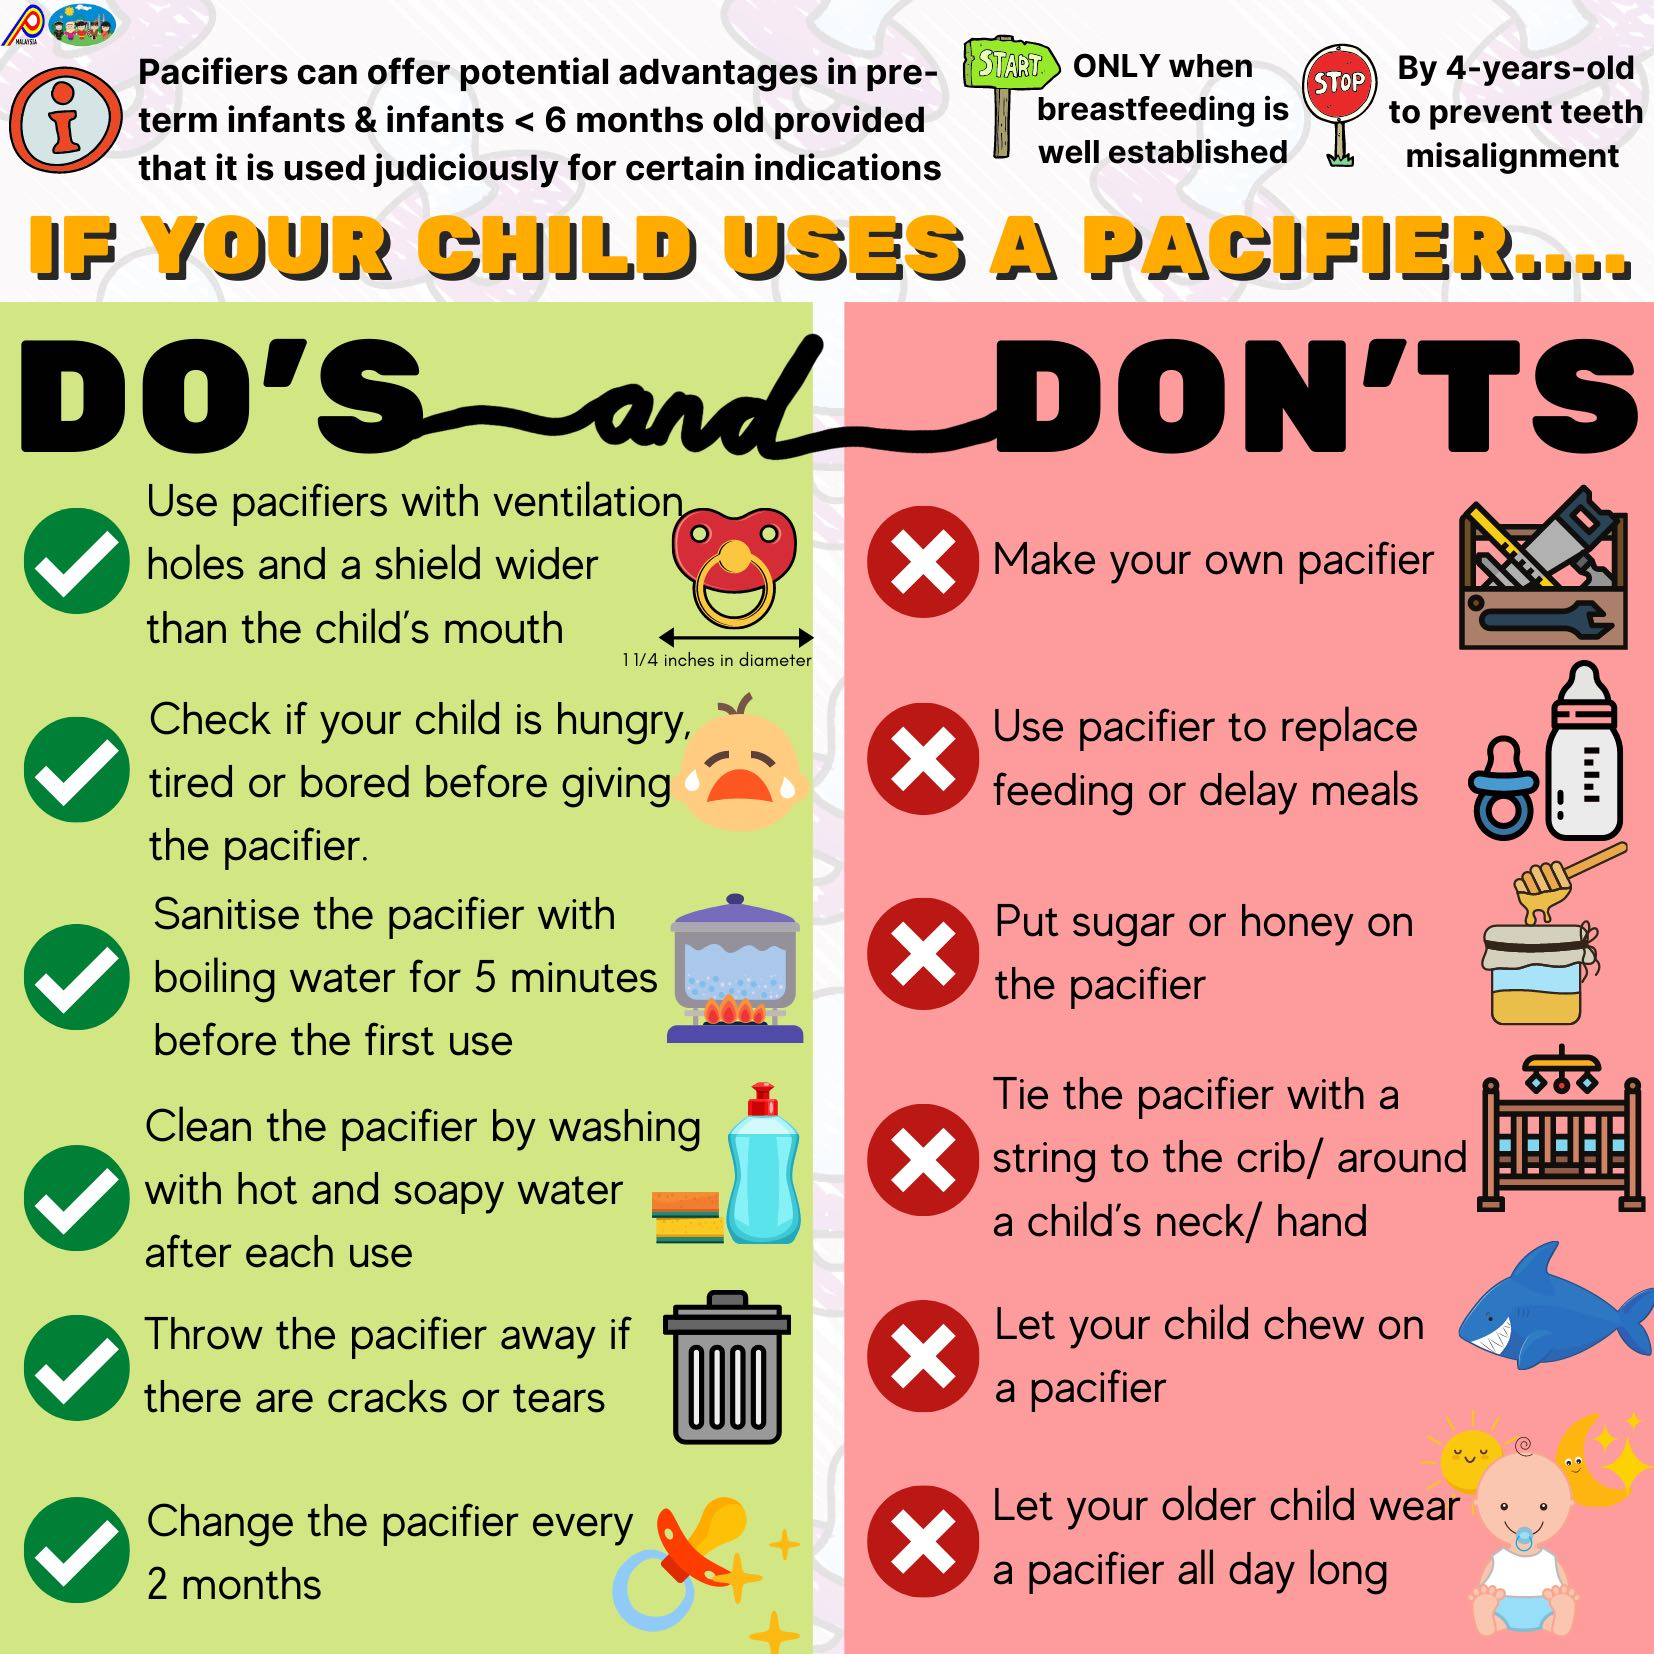 If your child uses a pacifier…